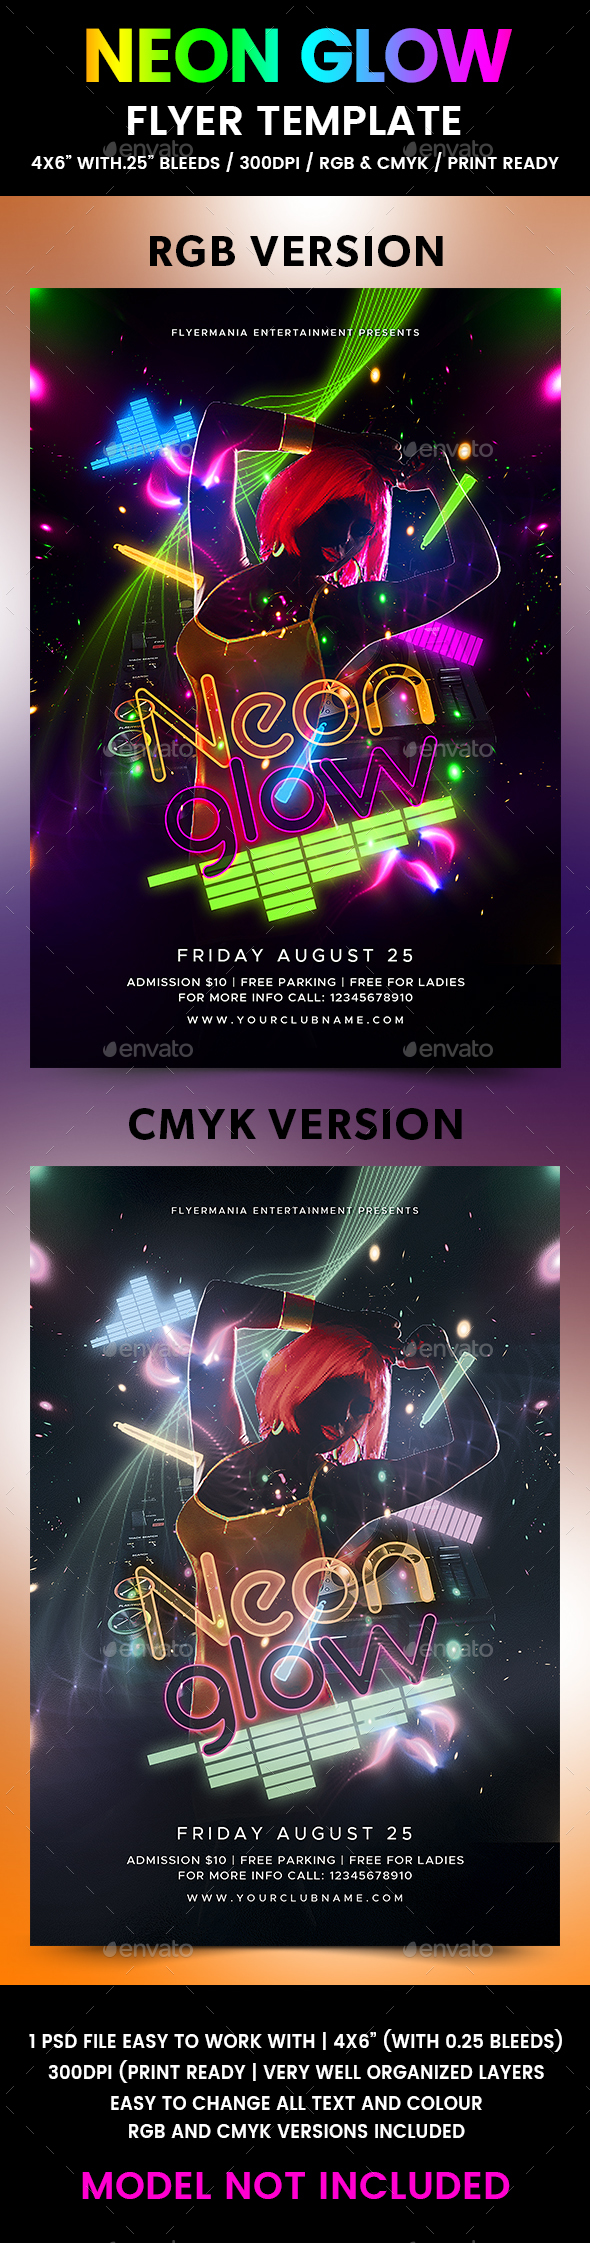 Neon Glow Flyer Template - Flyers Print Templates